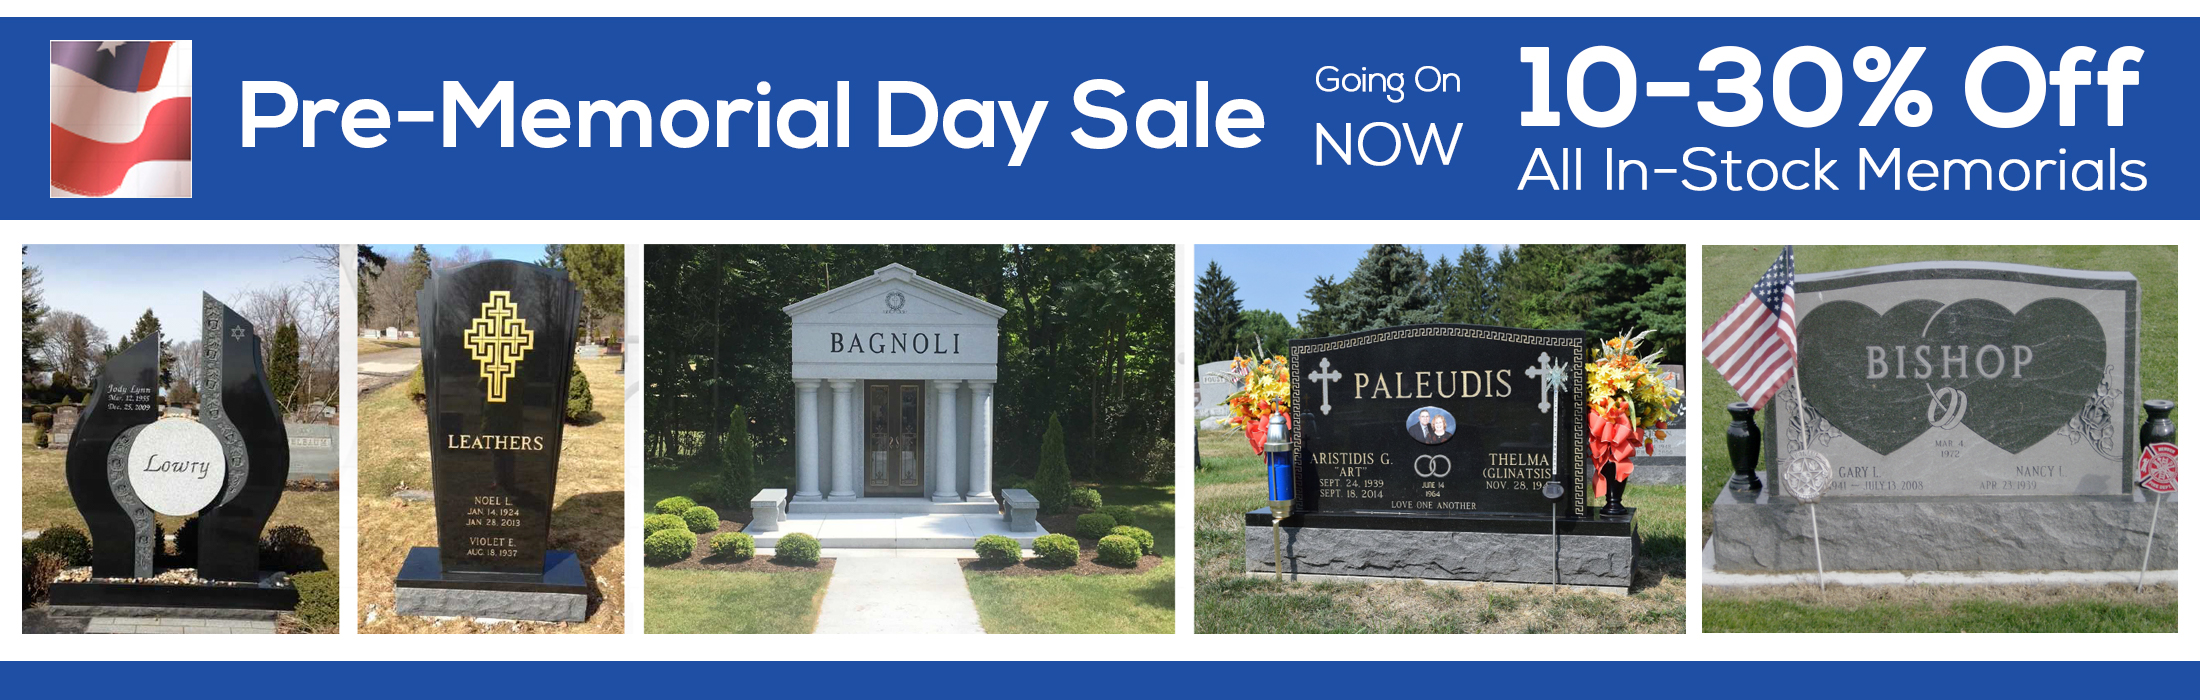 Pre-Memorial Day Sale 2020 | Going On Now